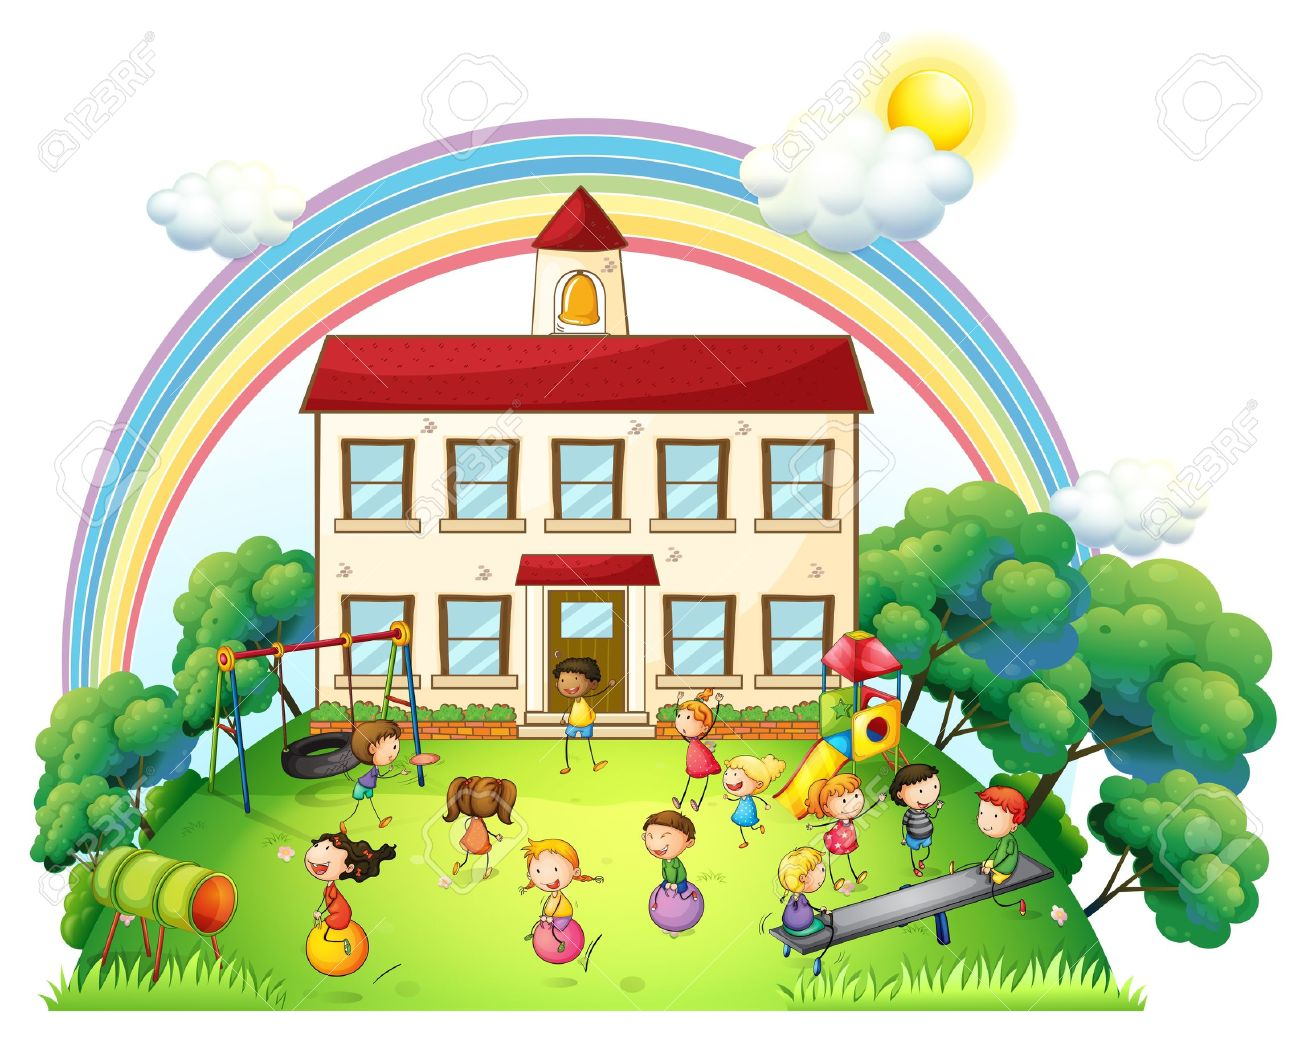 Illustration of the children playing in front of the school on a white background Stock Vector - 20729560